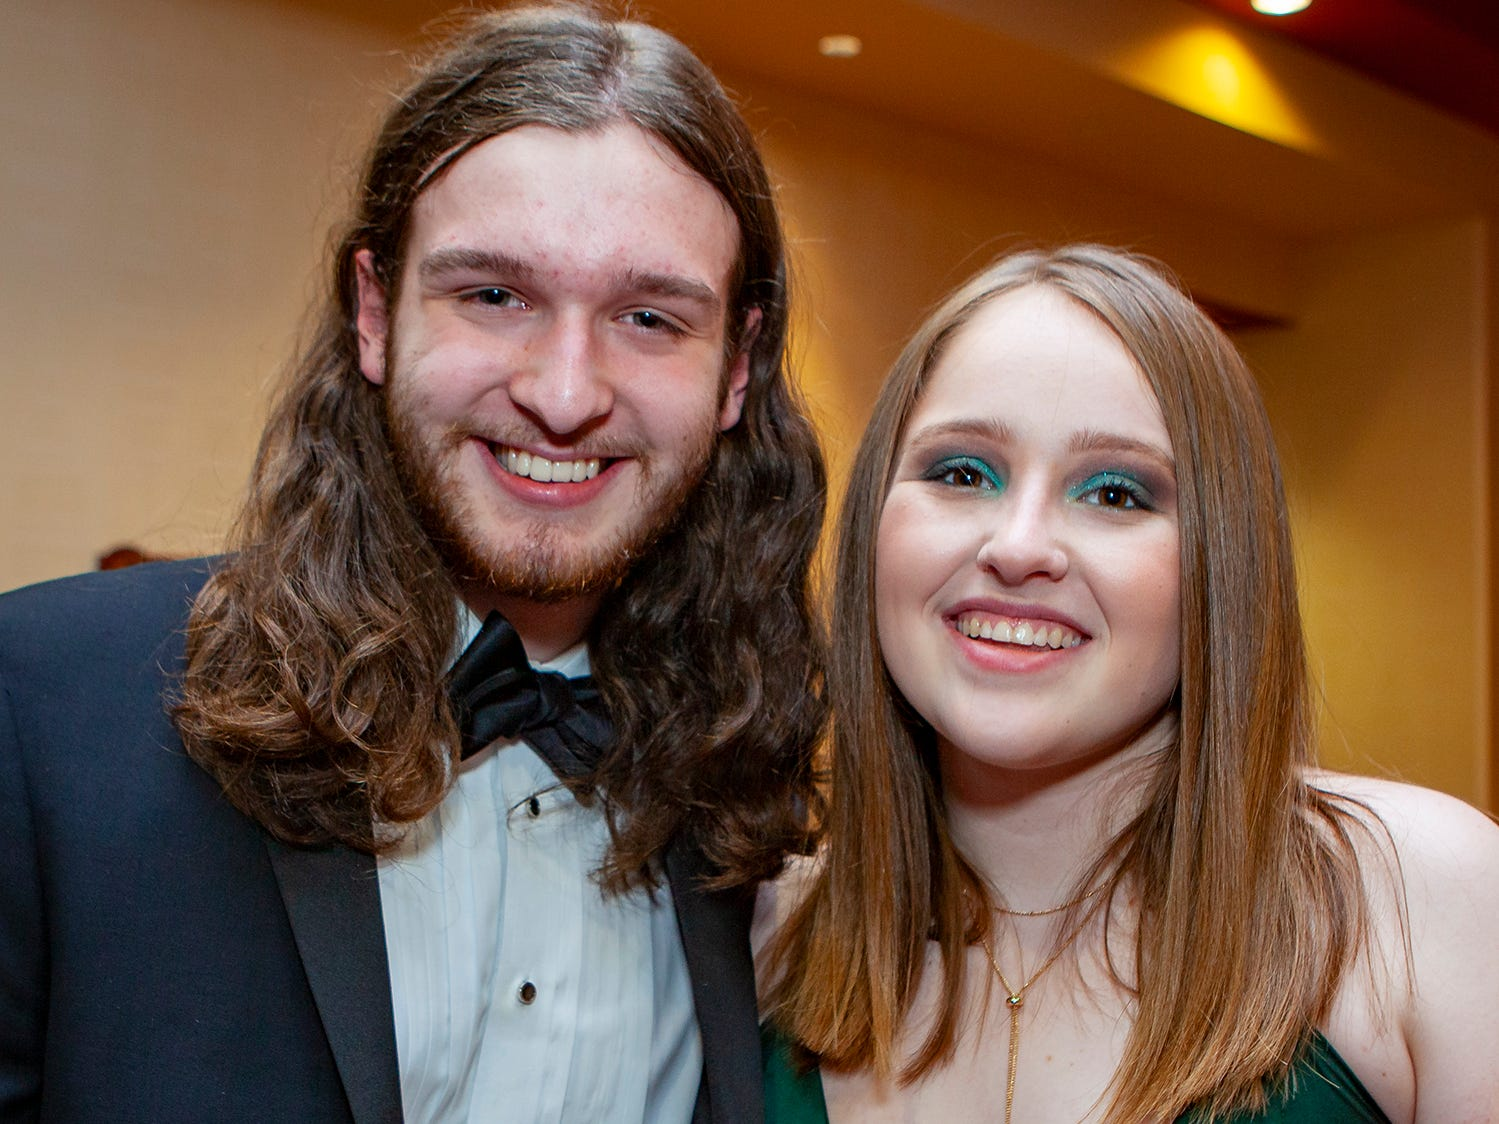 Thomas Dodd and Rylee Harris at Central Magnet School's prom Saturday, April 6, 2019 at Embassy Suites in Murfreesboro.